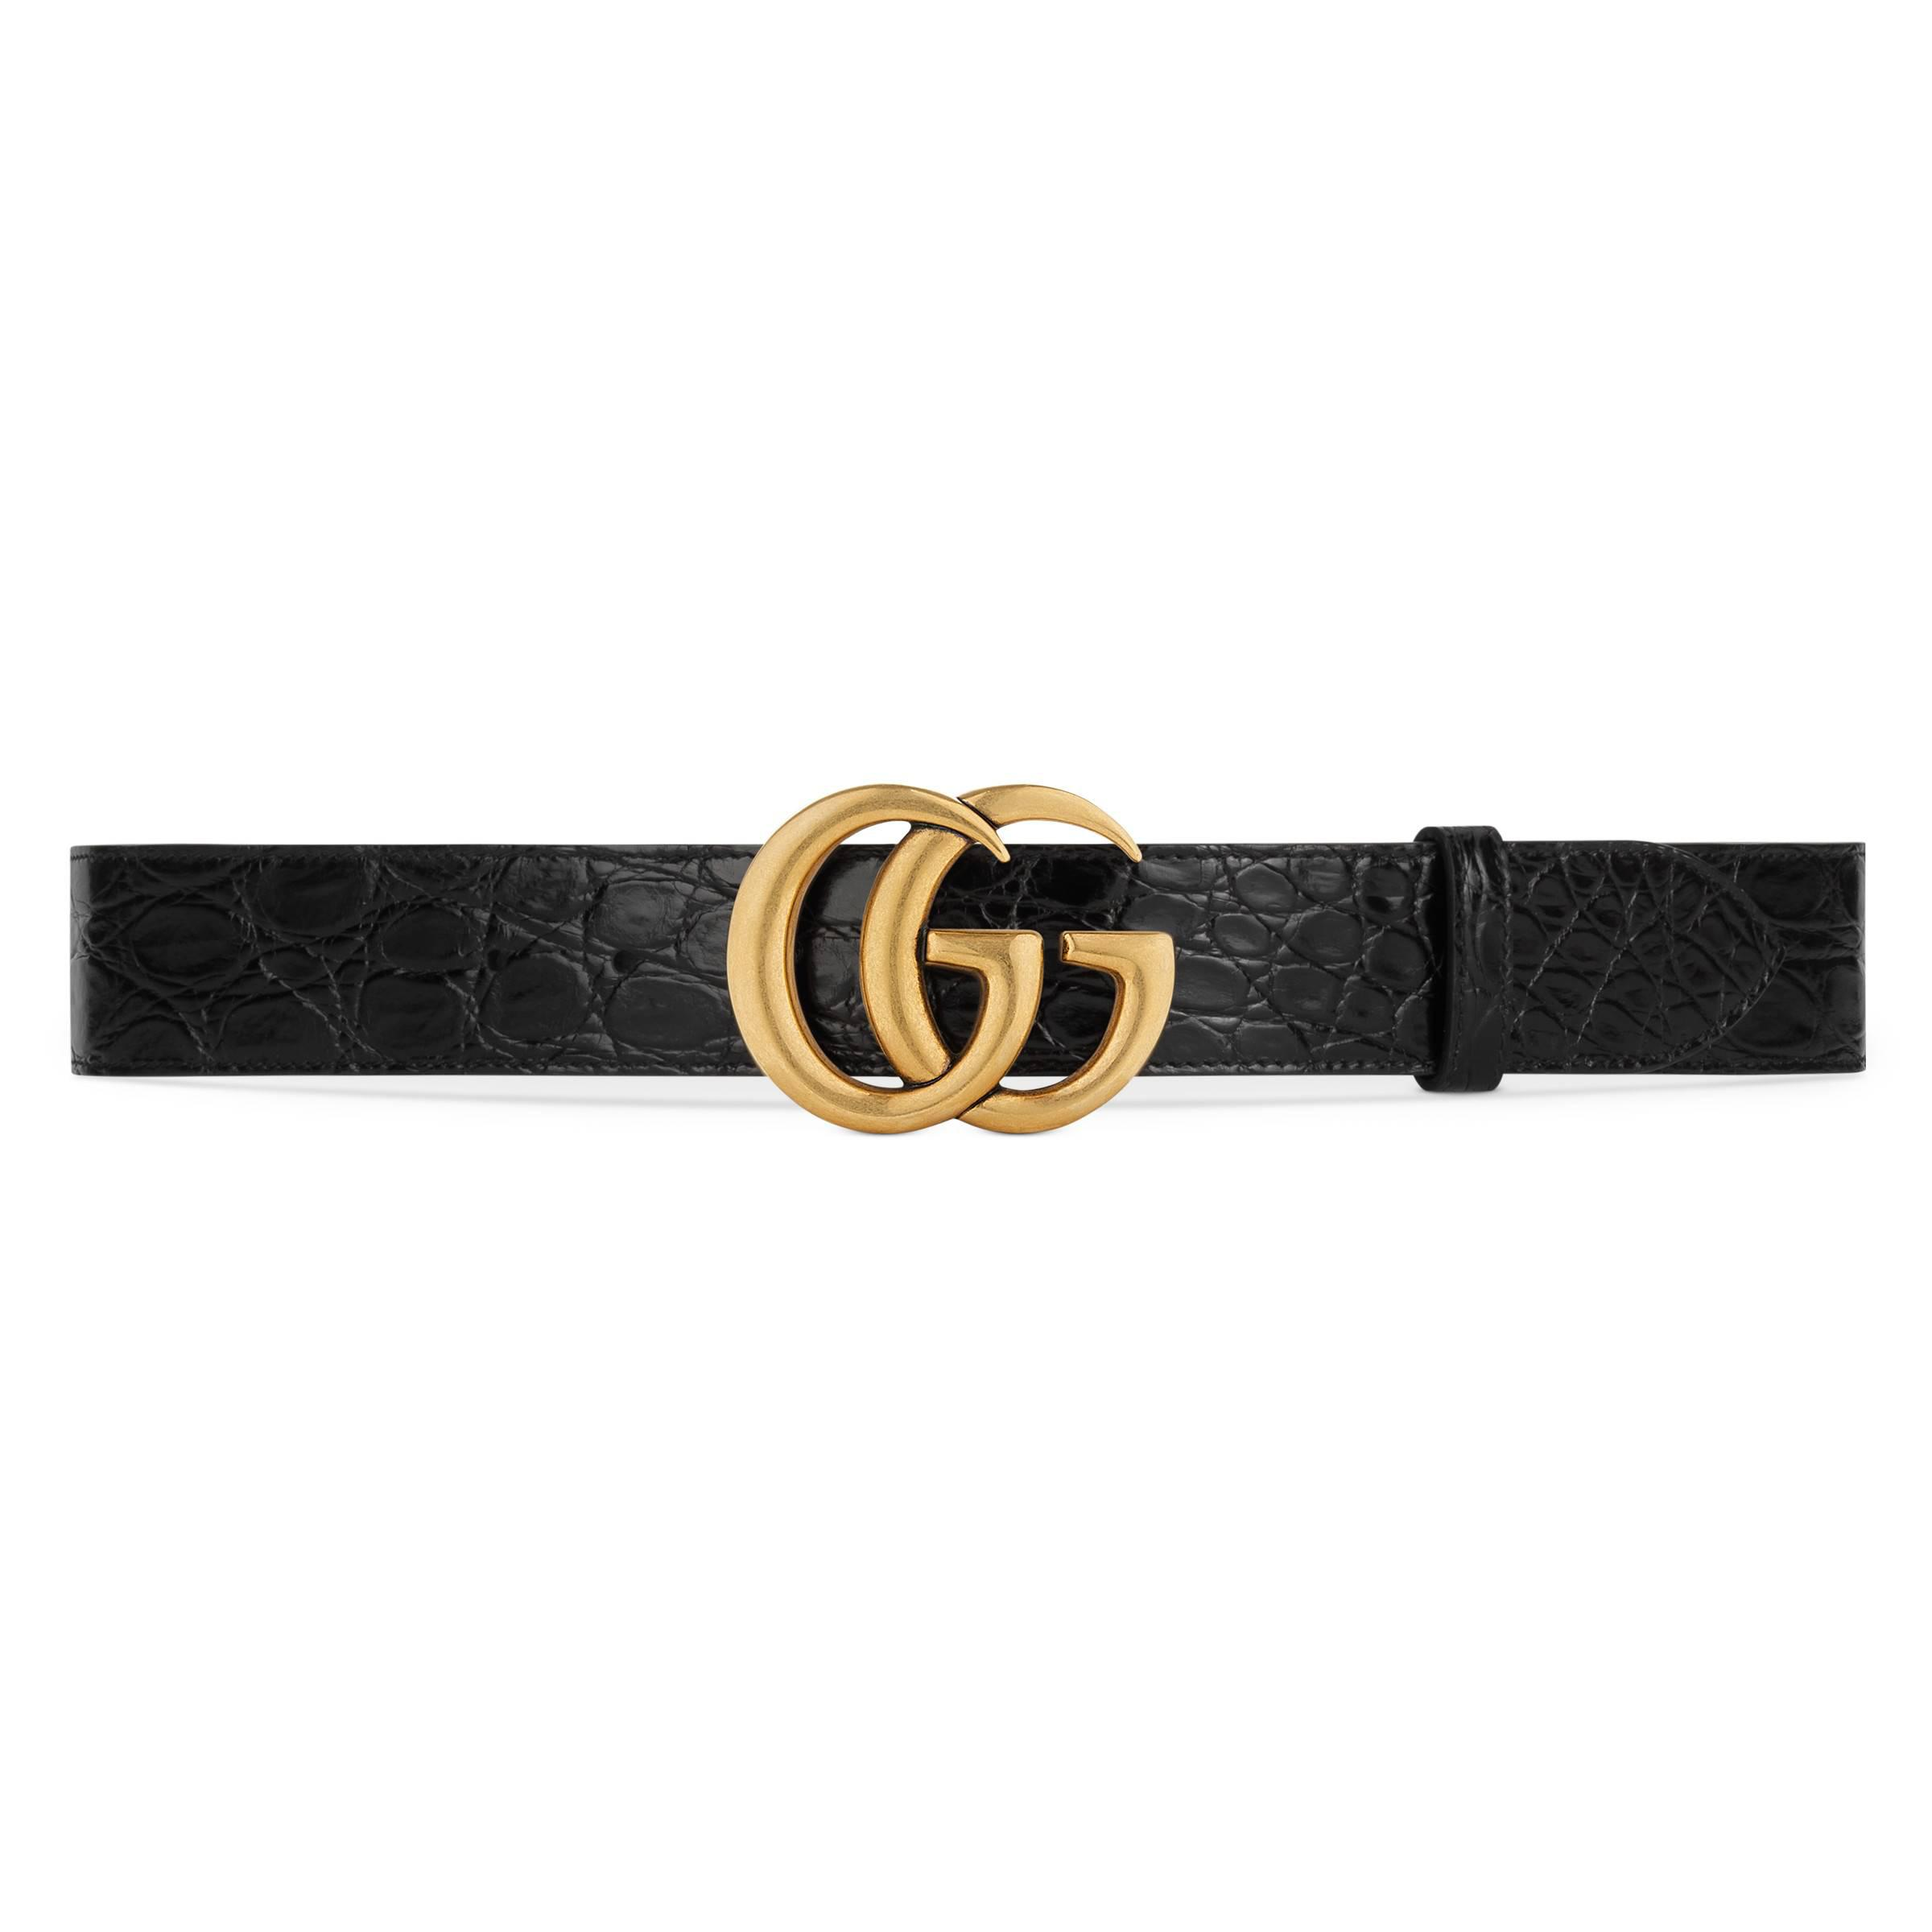 0a115668381 Gucci - Black Crocodile Belt With Double G Buckle for Men - Lyst. View  fullscreen